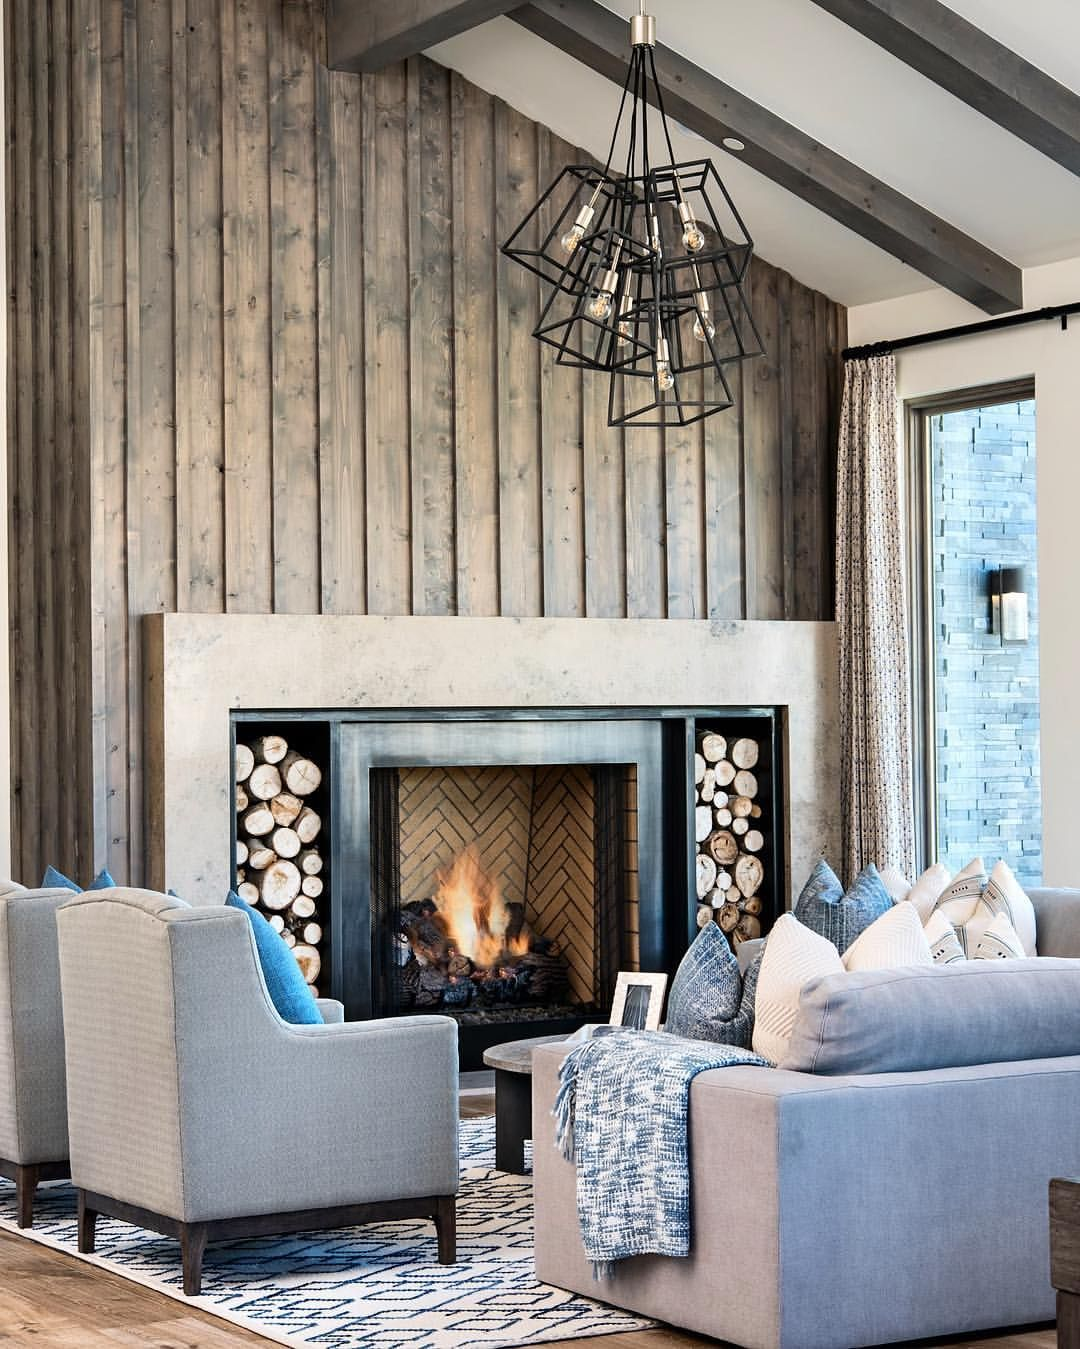 "Living Room Lighting Ideas On A Budget: Alder & Tweed On Instagram: ""This Room! This Fireplace"